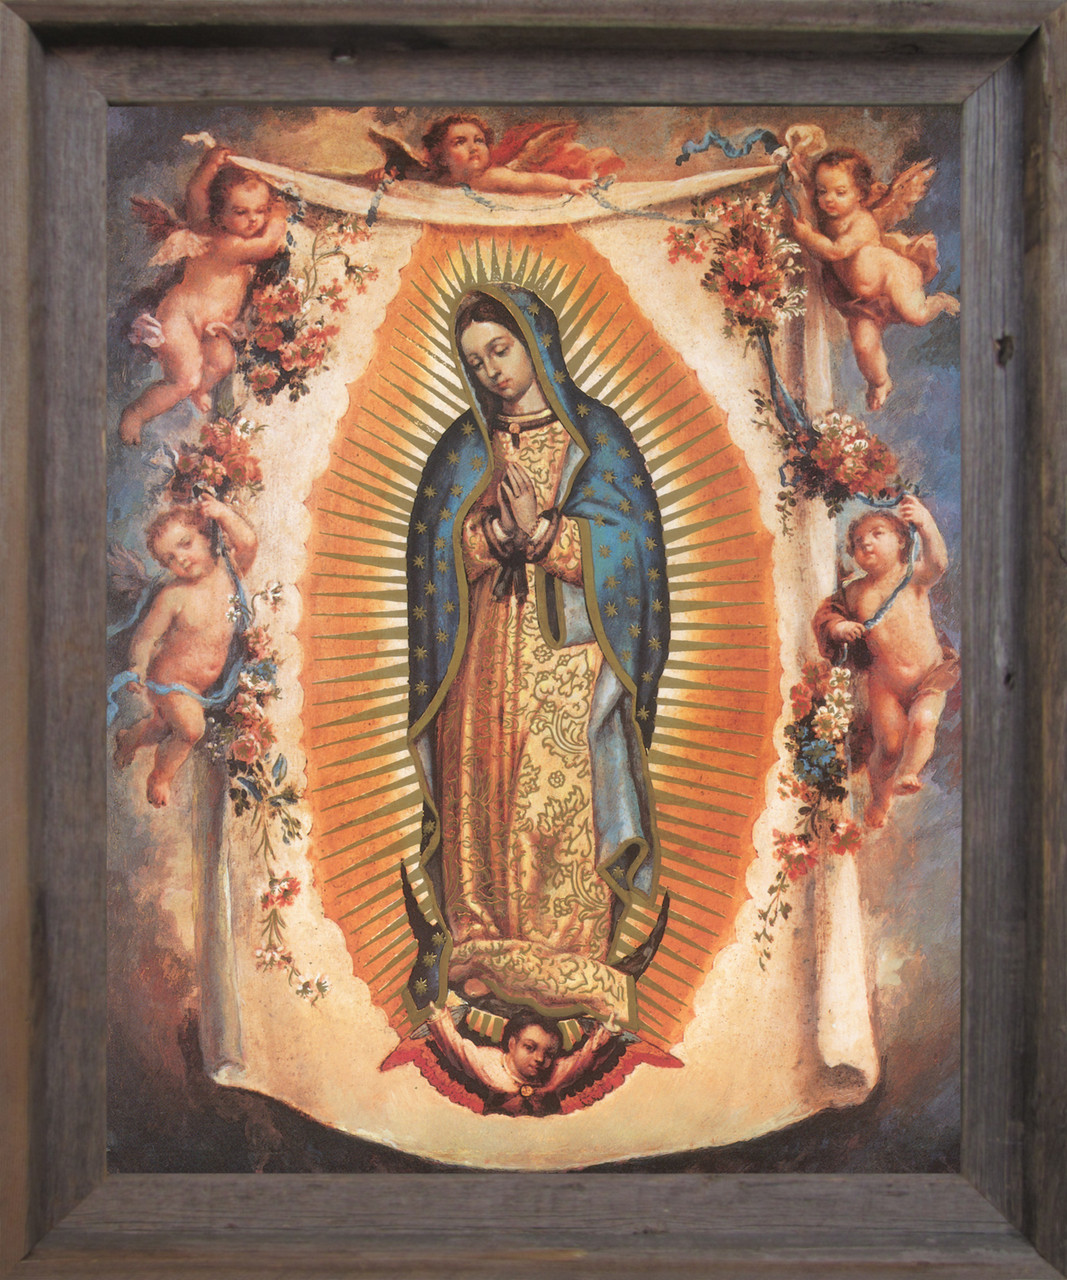 Virgin Mary Our Lady Of Guadalupe With Angels Barnwood Framed Art